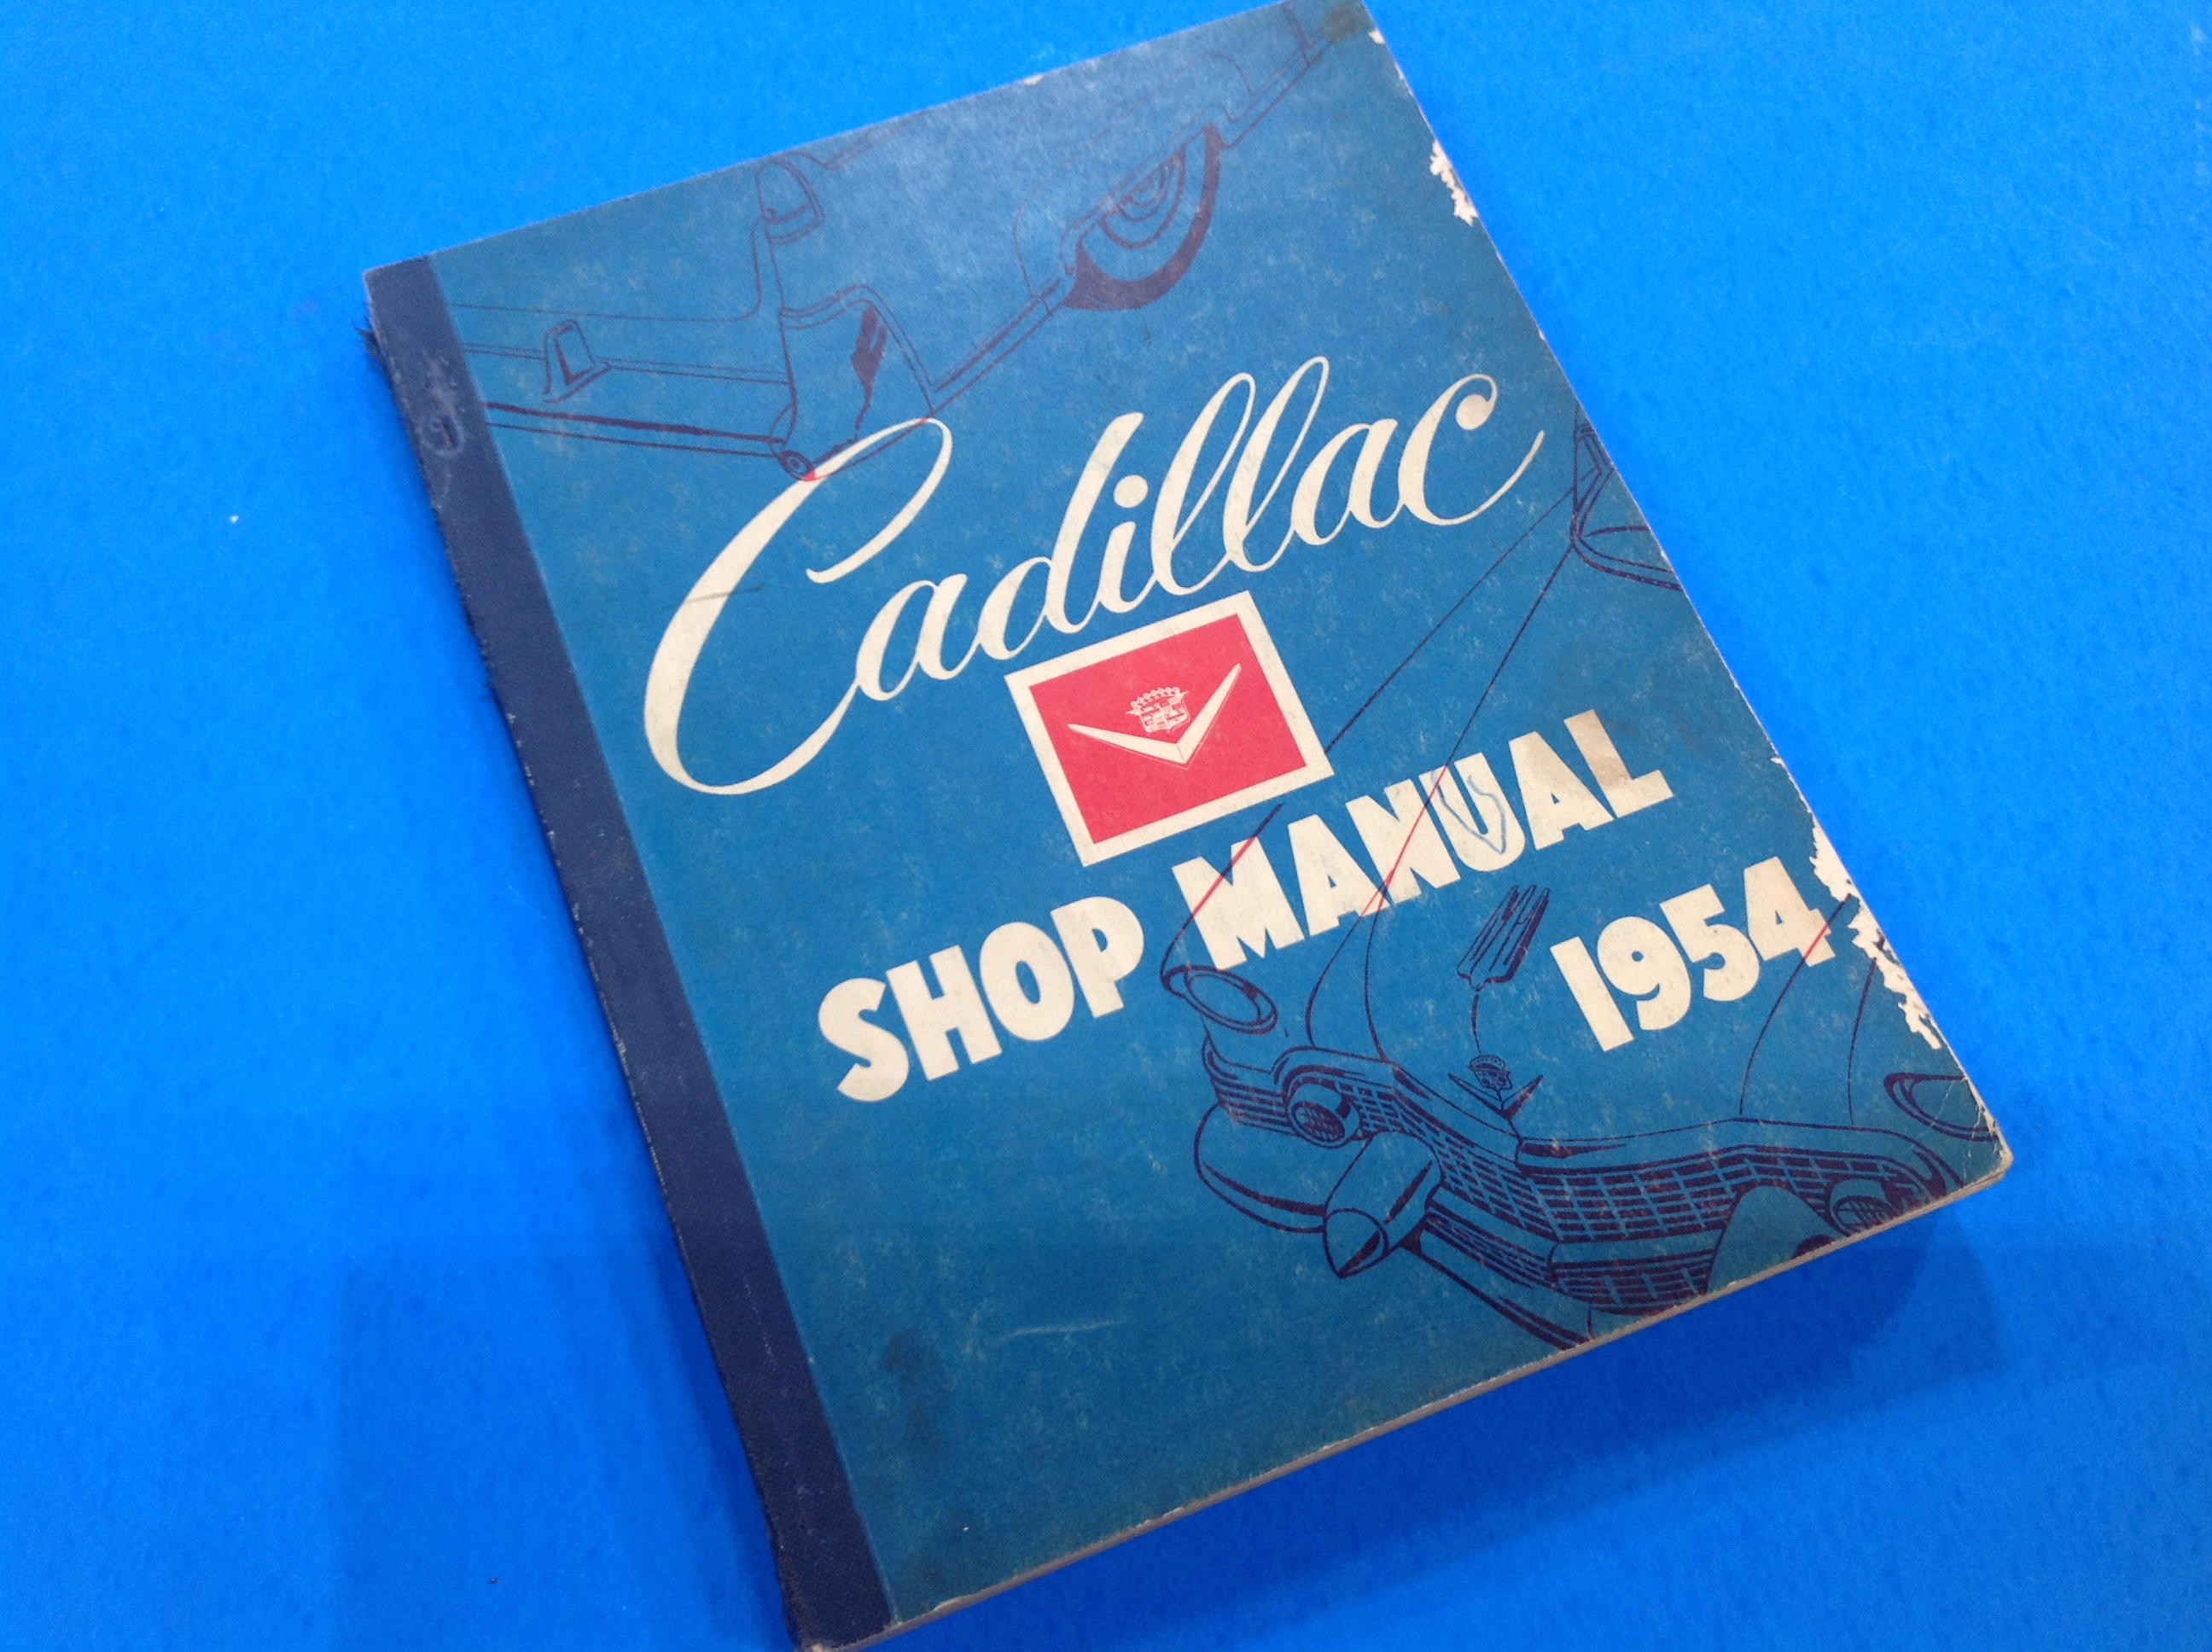 1954 – Cadillac Shop Manual